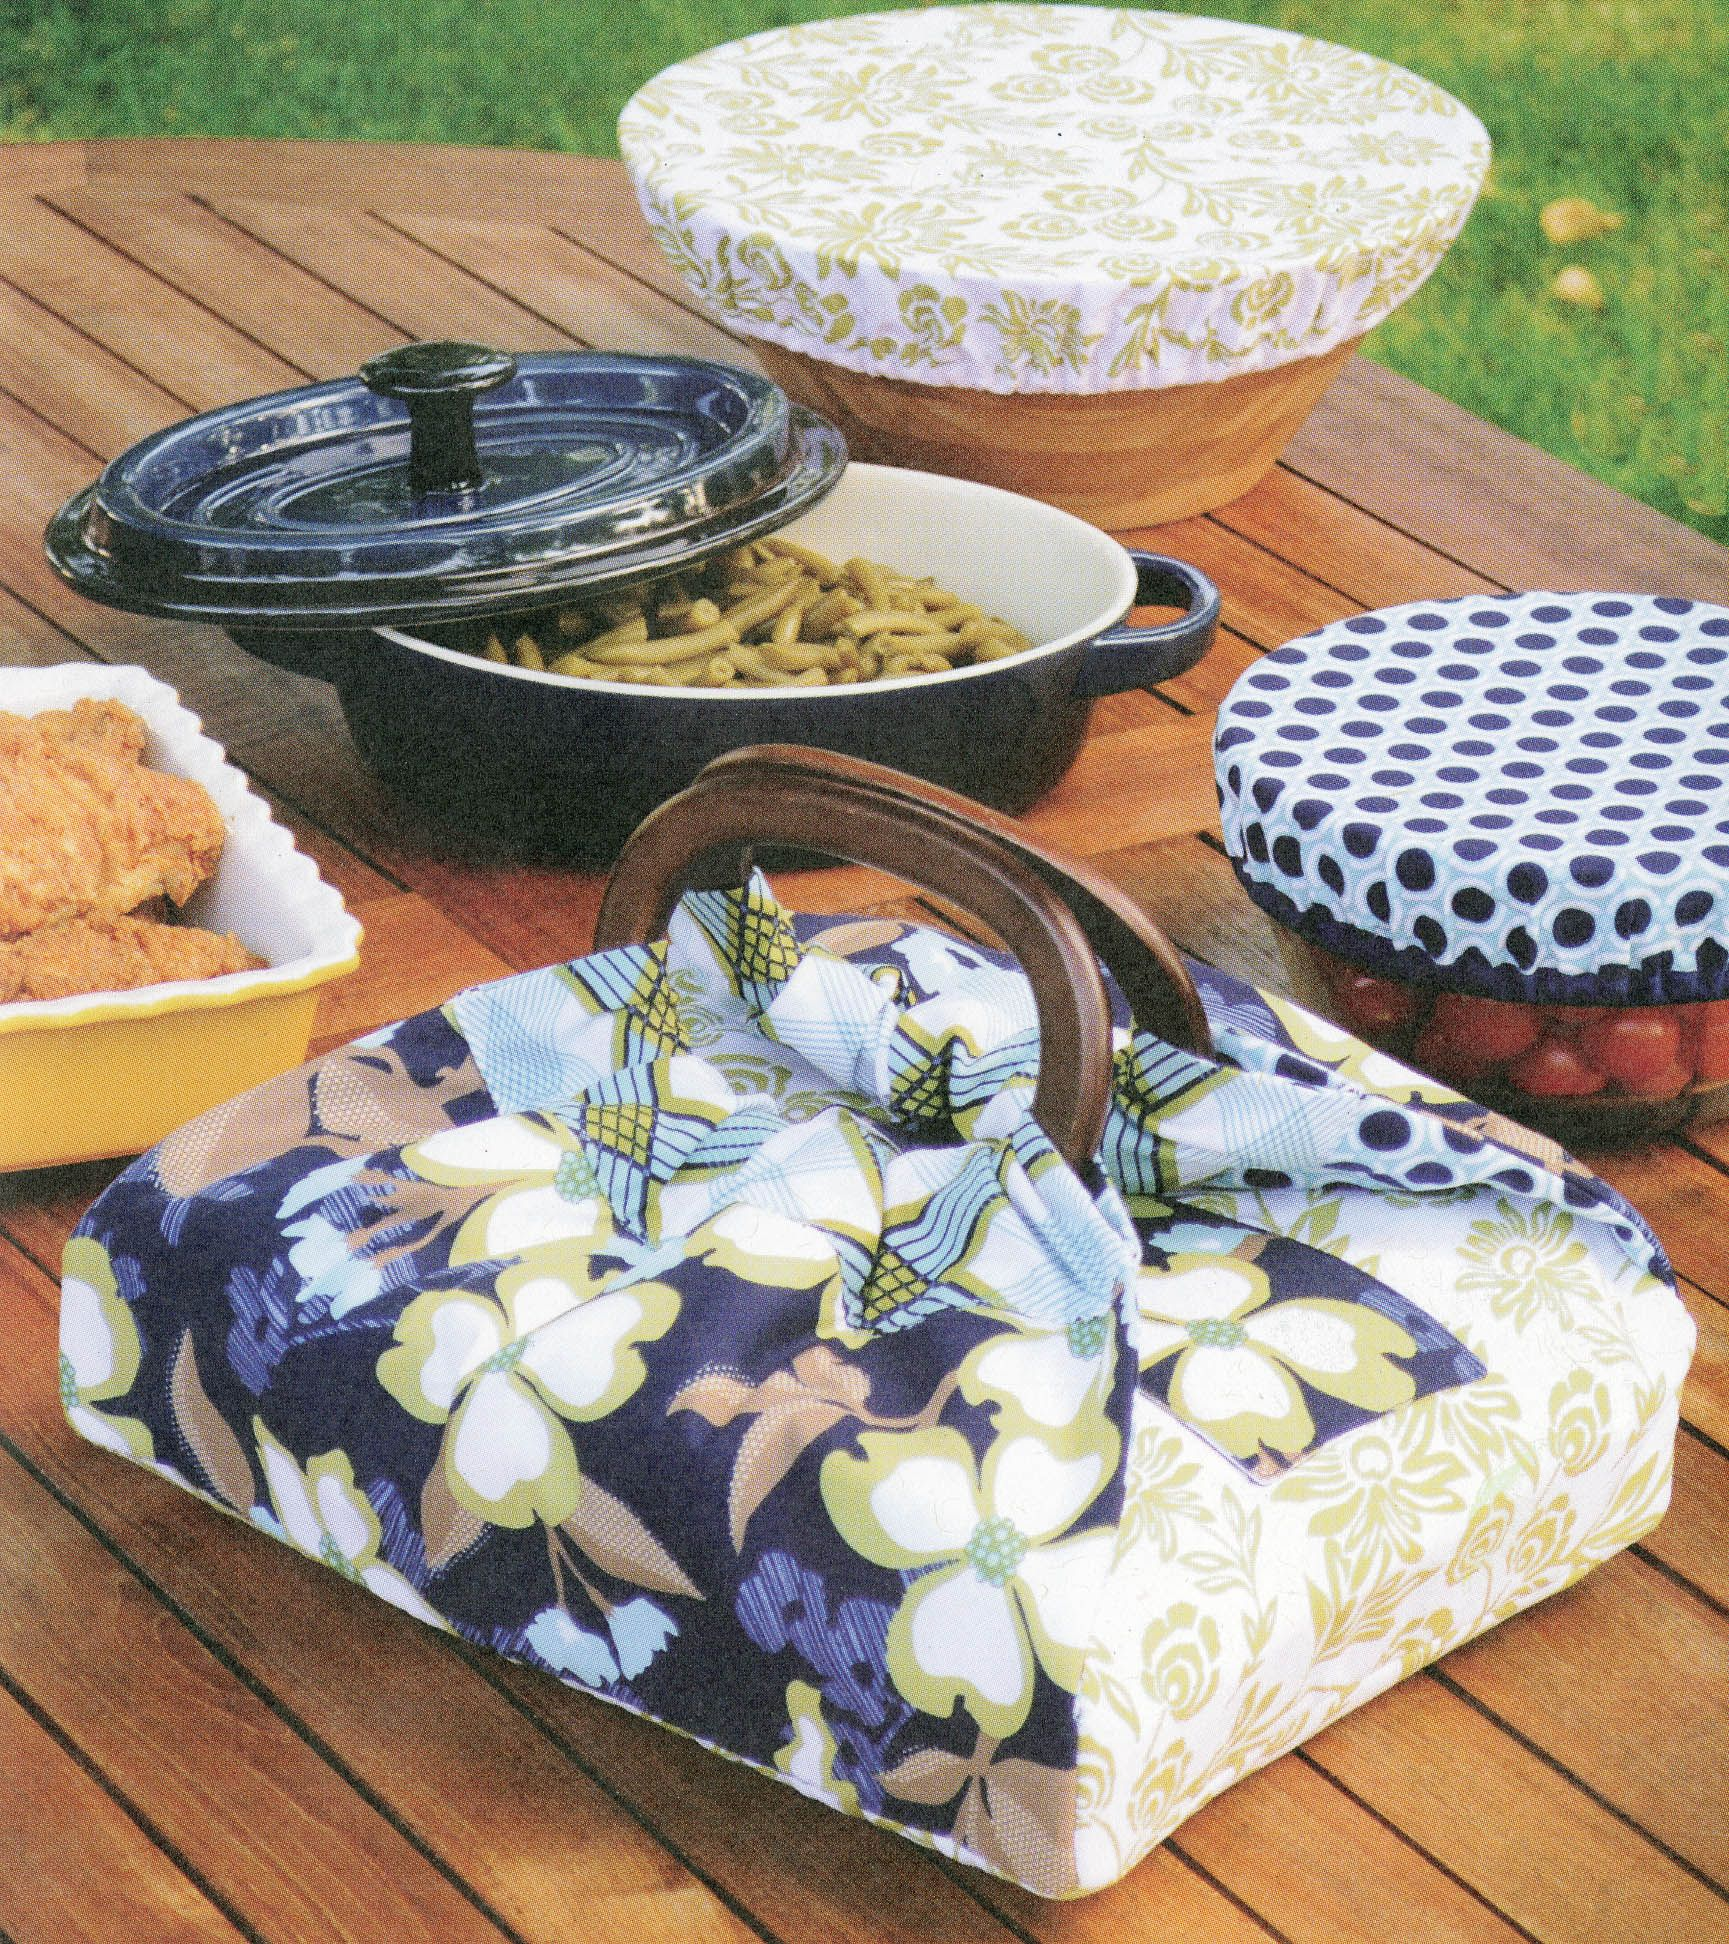 The Casserole Carrier And Bowl Covers